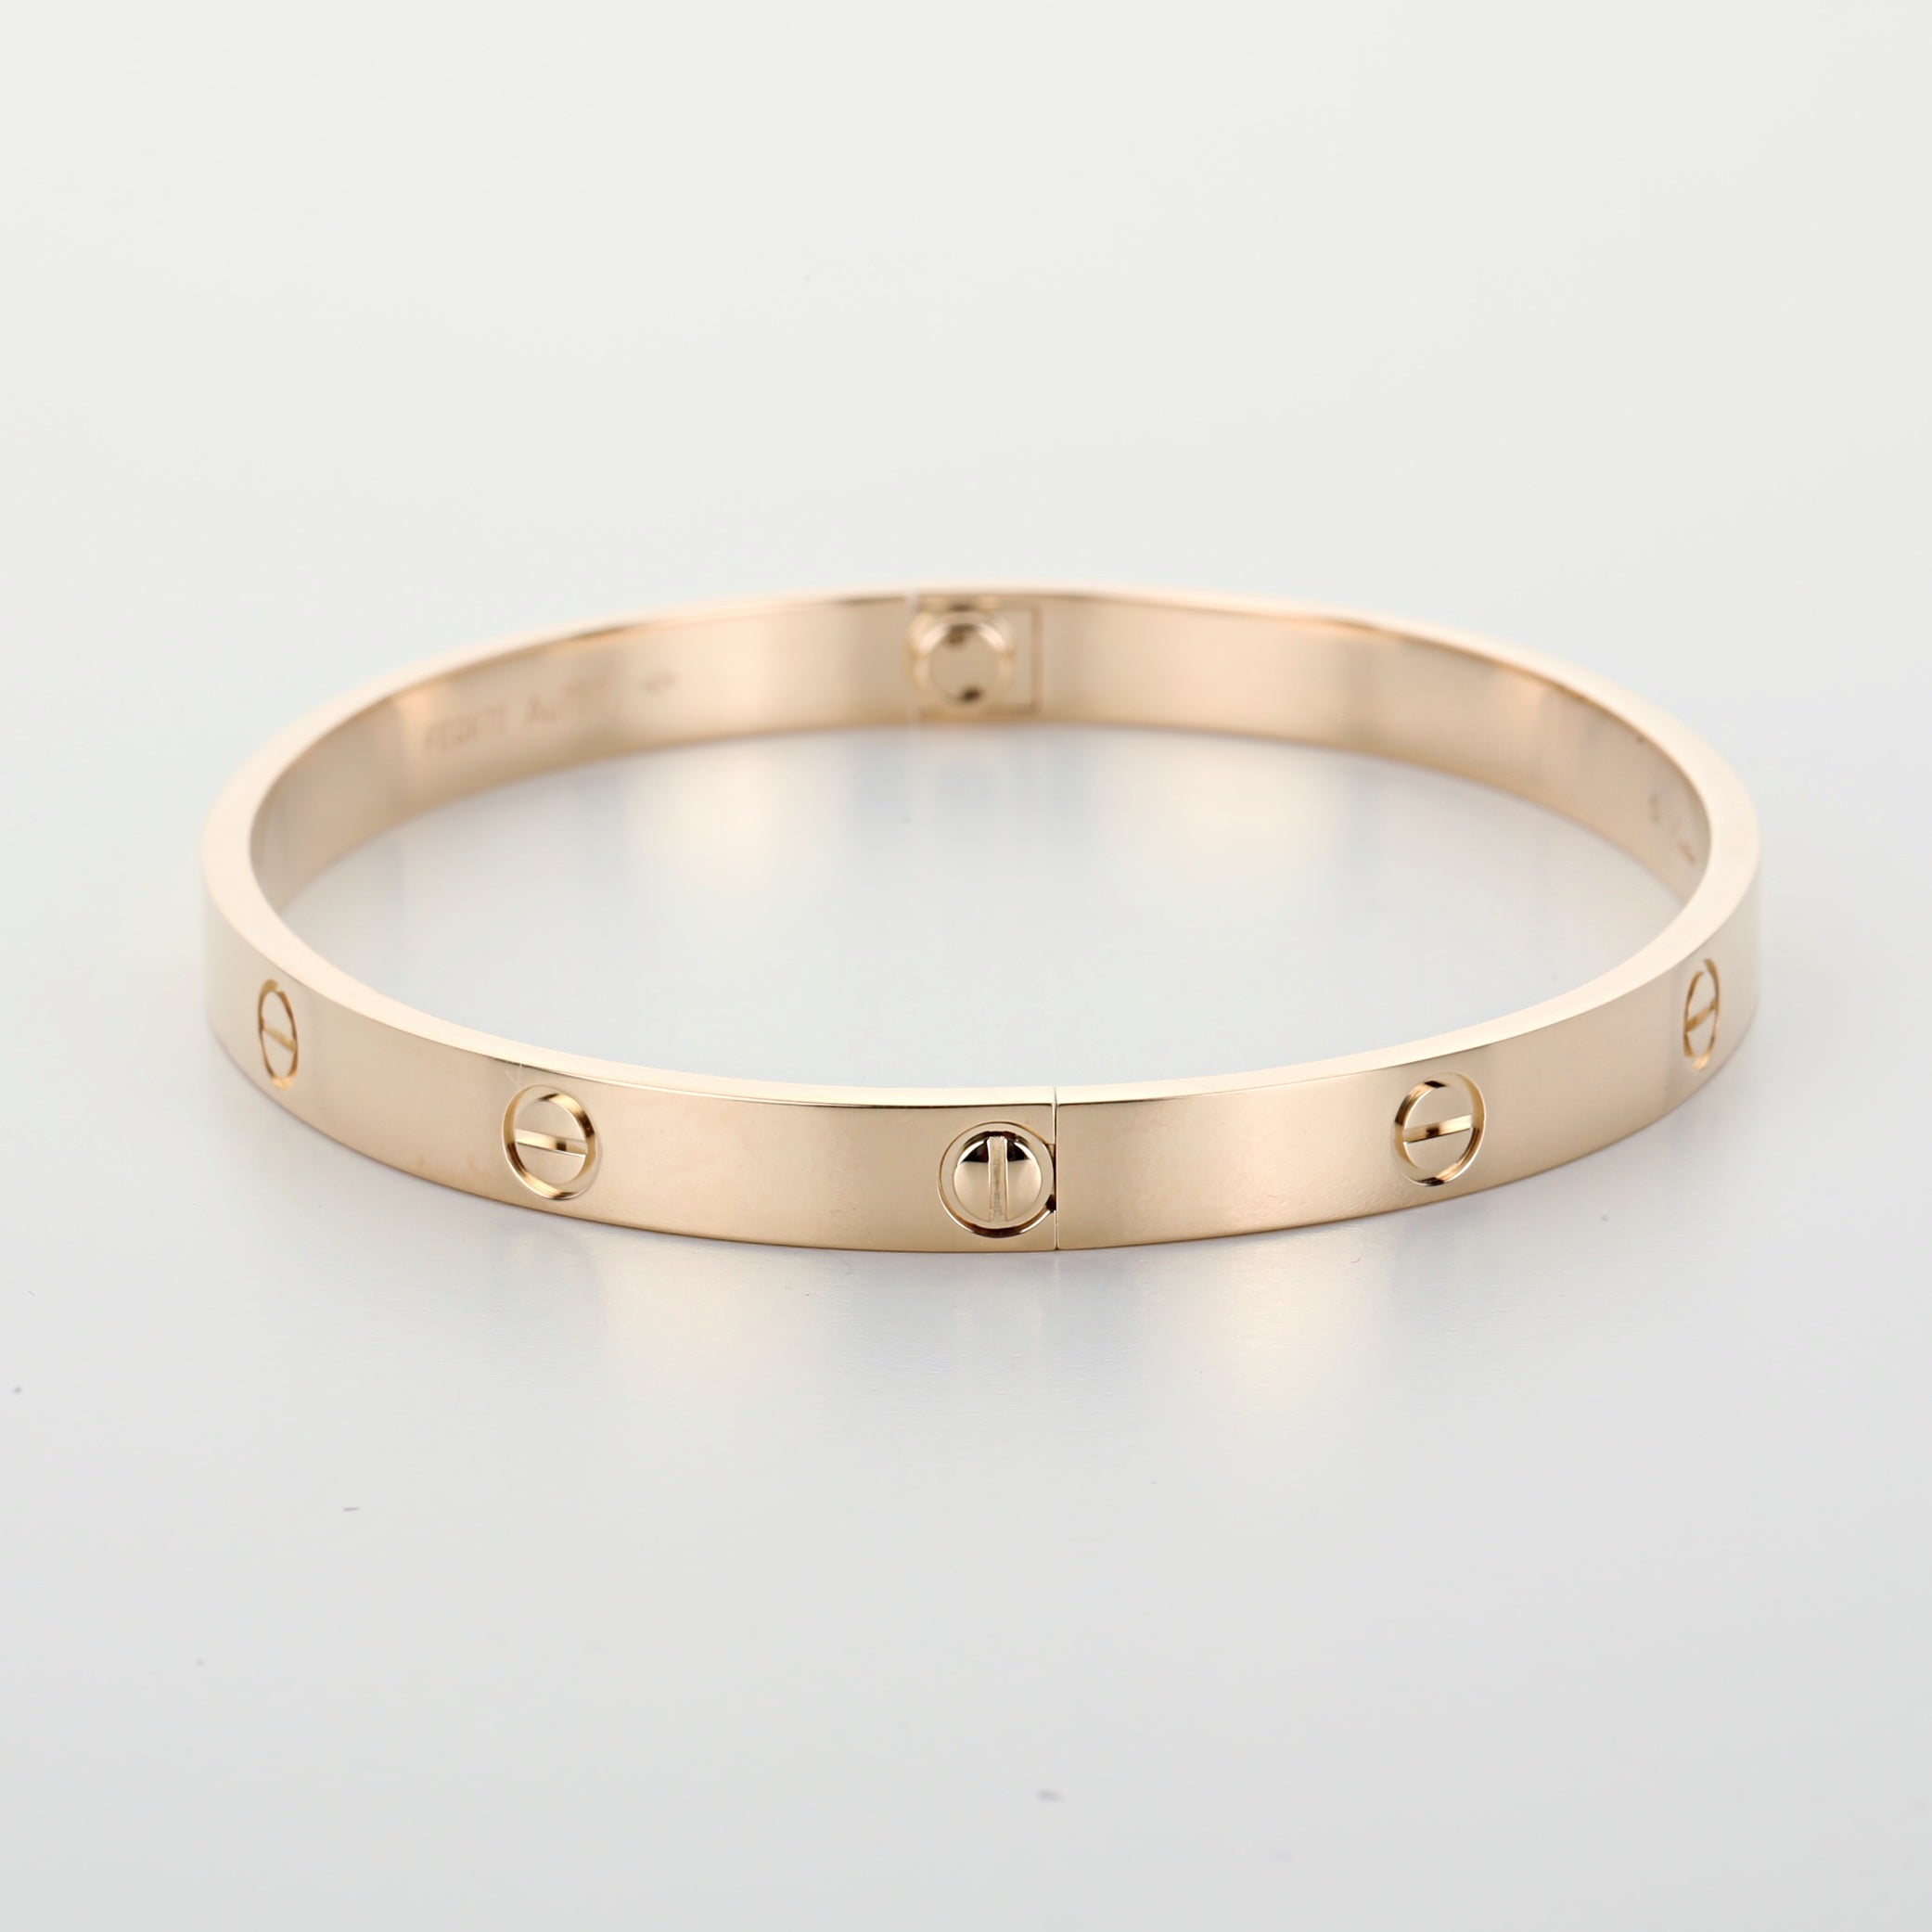 18k yellow gold Cartier Love bangle bracelet size 21 new style 2018 box & papers